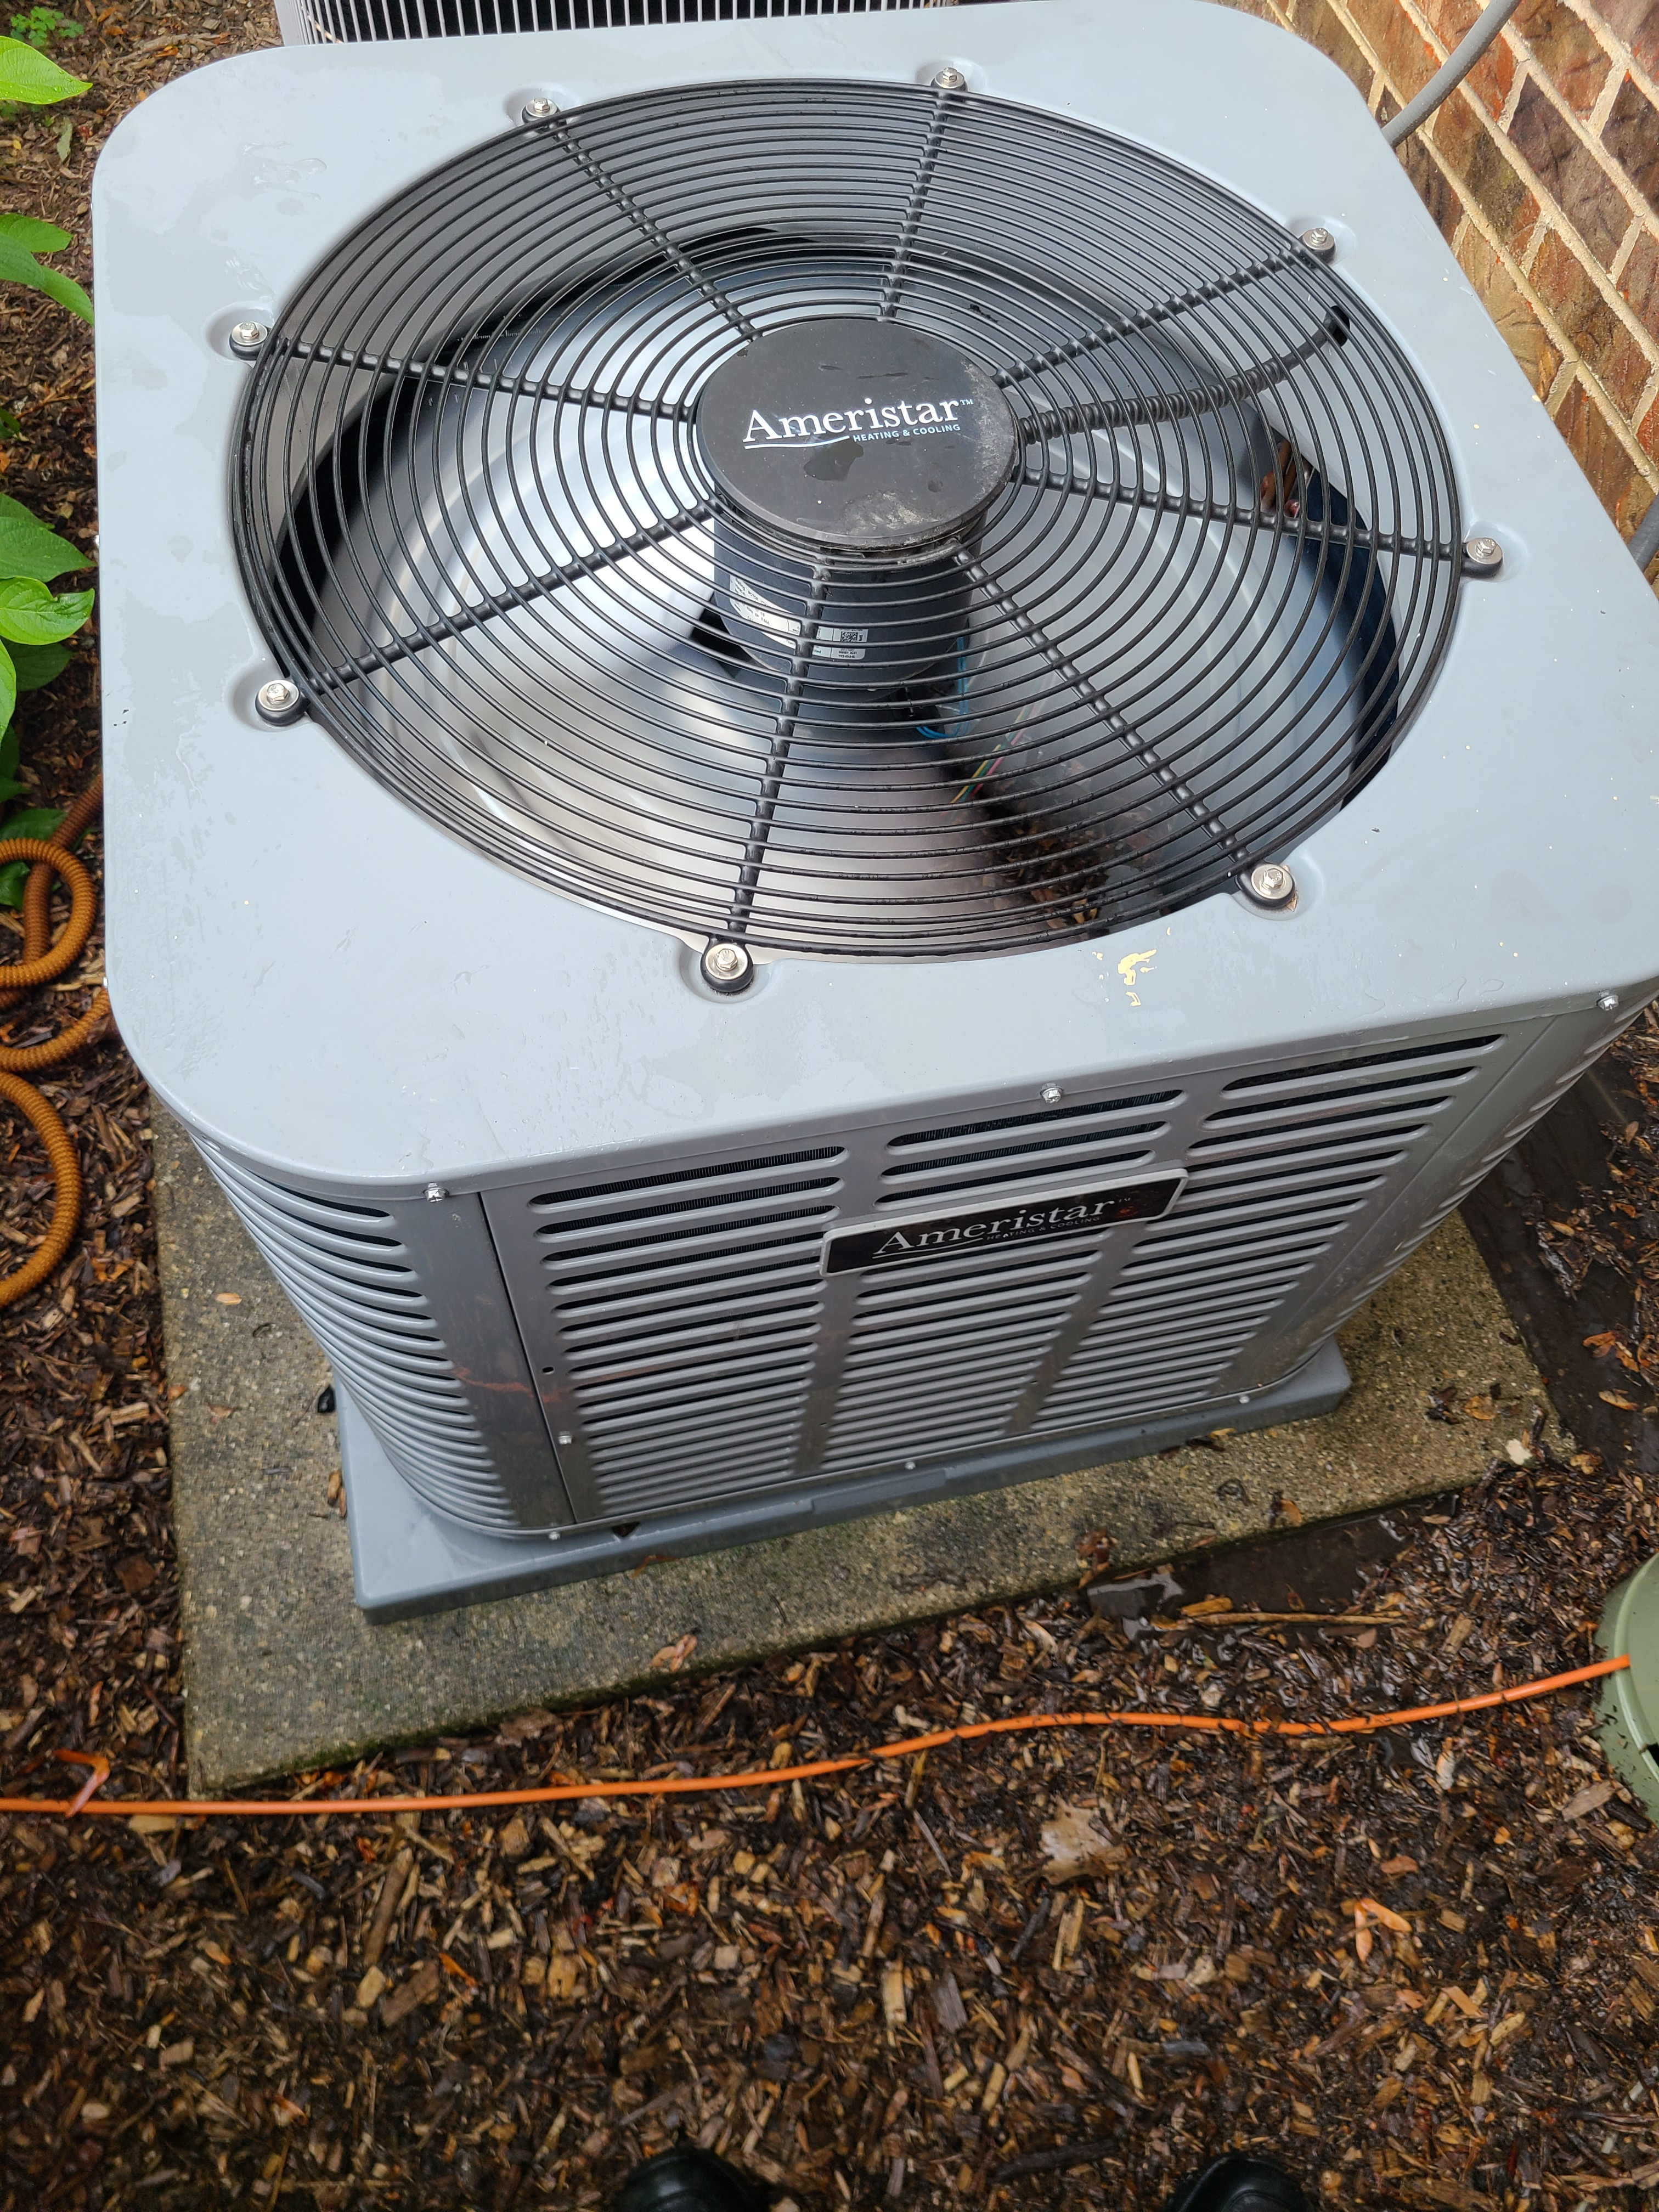 Ameristar r410a system cleaned tested and ready for summer operation